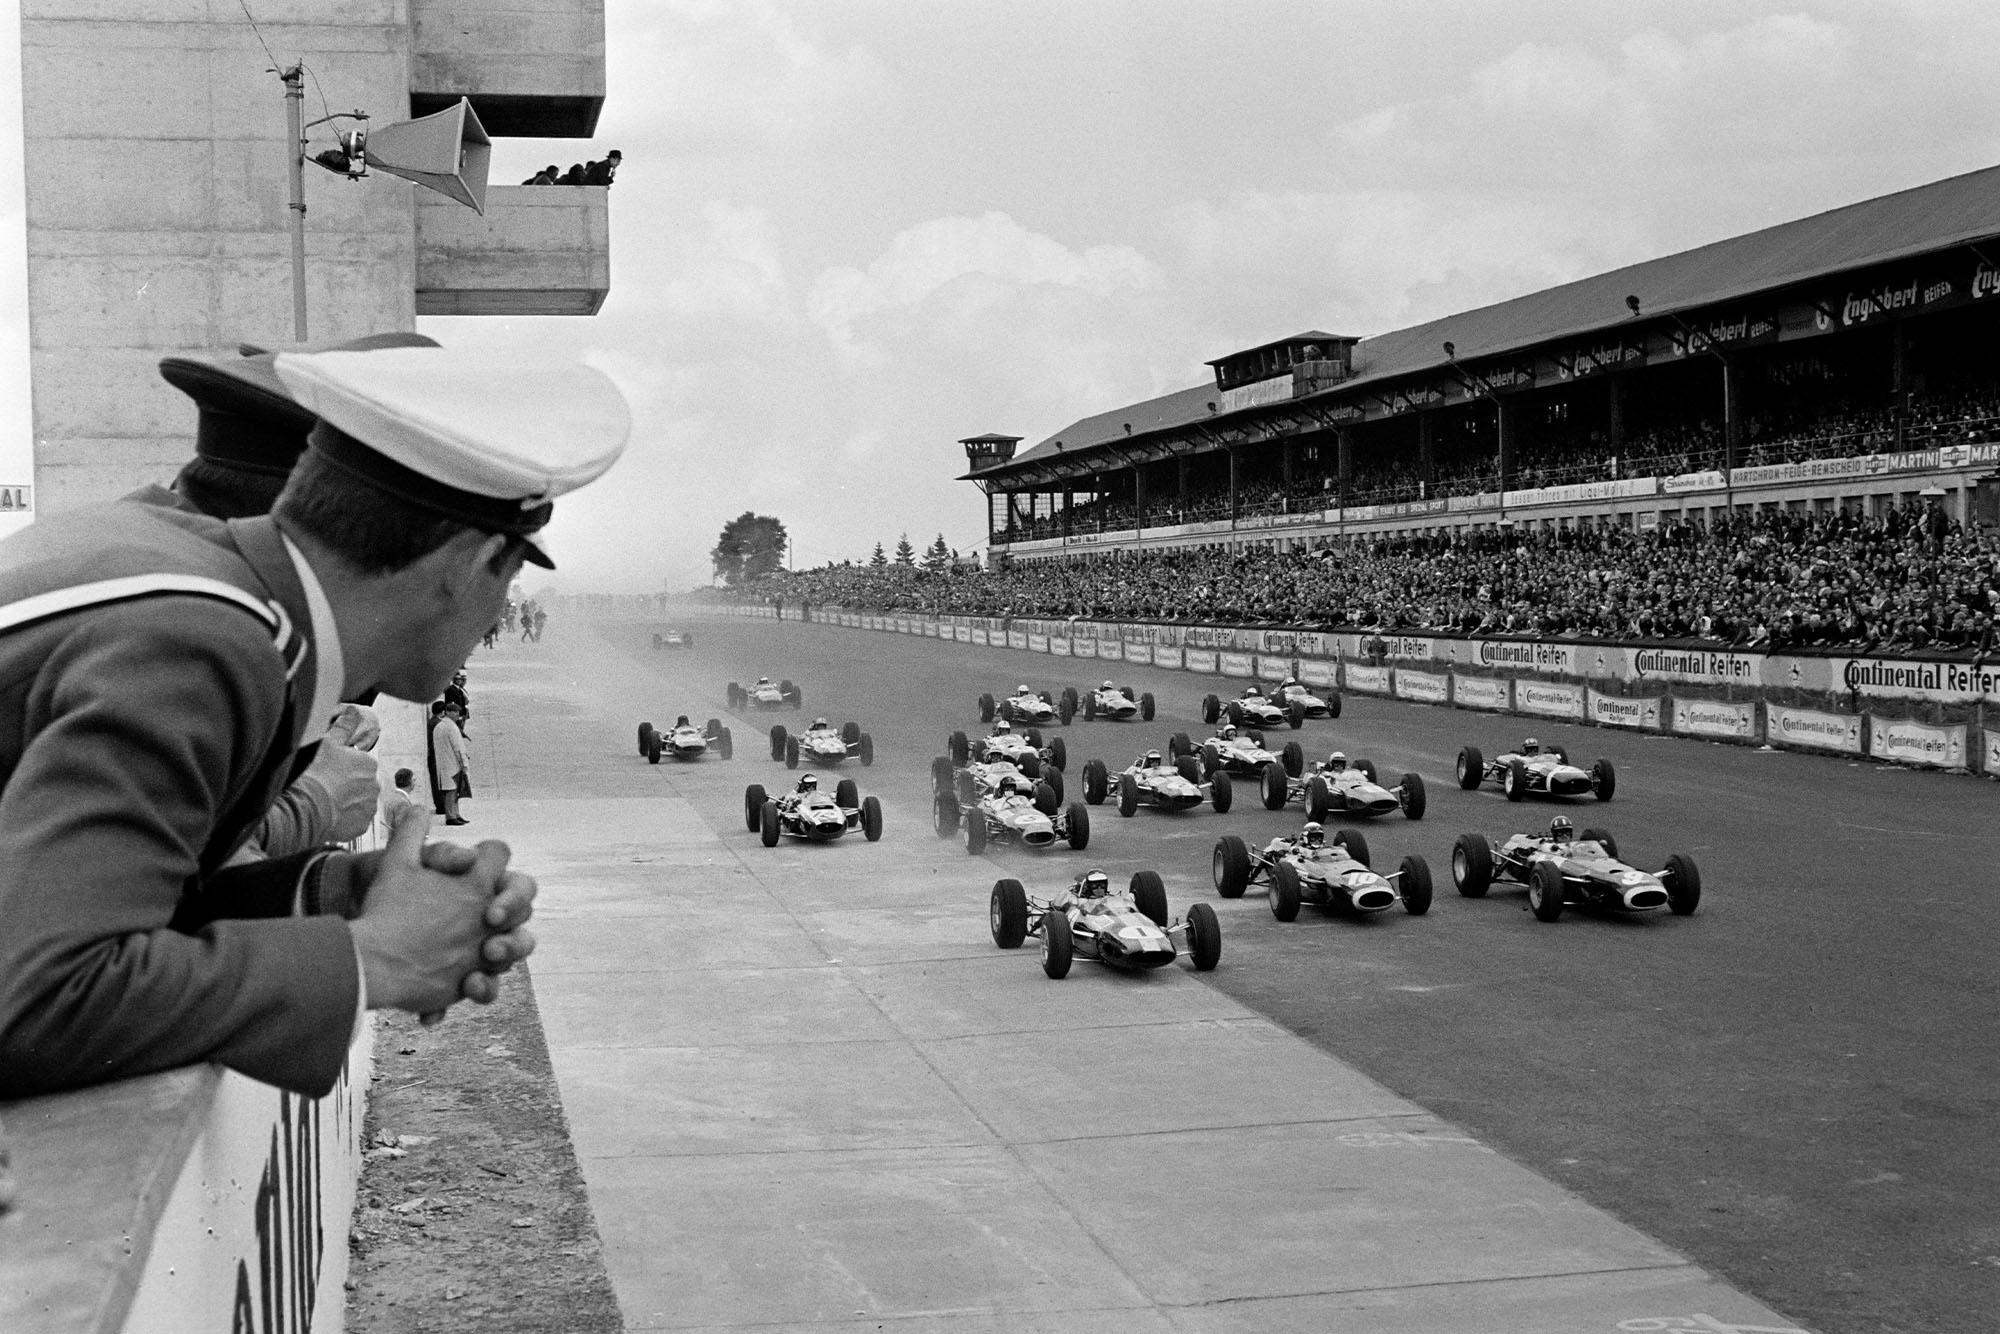 Jim Clark, Lotus 33 Climax, leads Jackie Stewart, BRM P261, Graham Hill, BRM P261, Dan Gurney, Brabham BT11 Climax, Lorenzo Bandini, Ferrari 158, Mike Spence, Lotus 33 Climax, and the rest of the field at the start of the race.